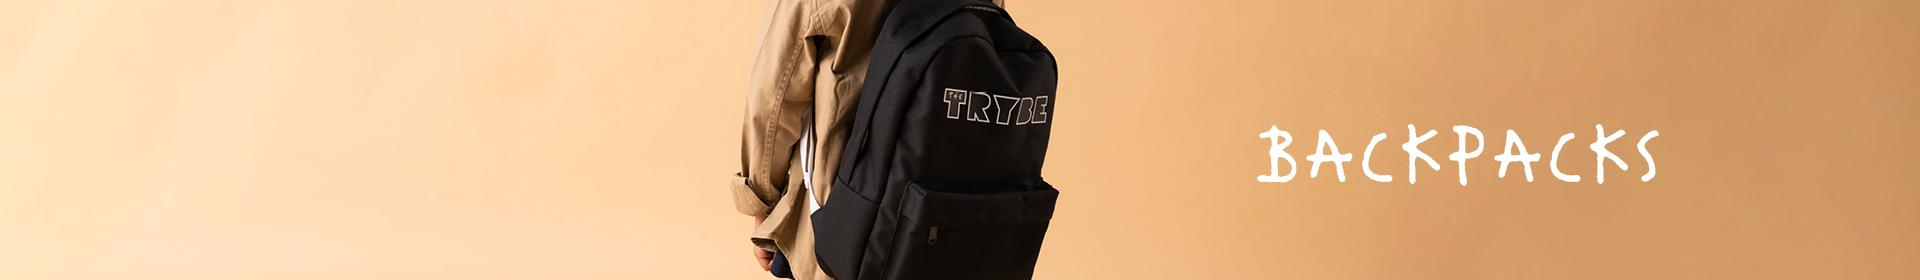 The Trybe: Accessories: Backpacks